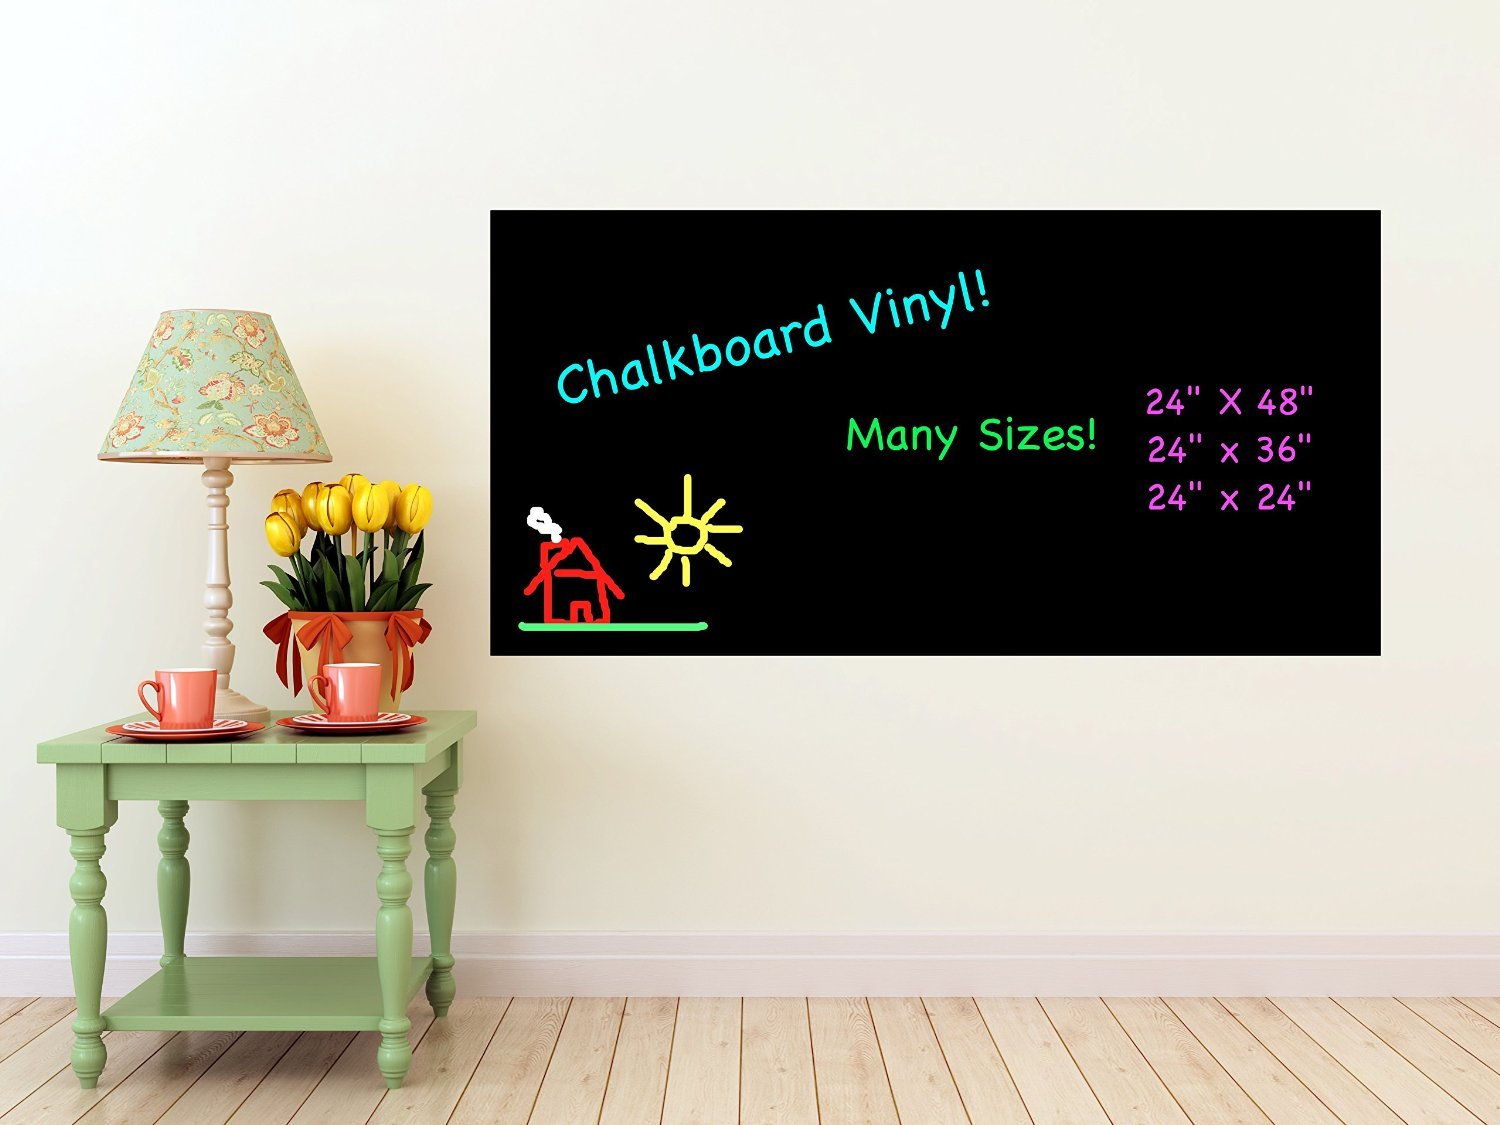 Buy Tiny Deal 200 X 45Cm Waterproof Chalkboard Removable Vinyl Wall Sticker  Decal With 5 Pcs Online At Low Prices In India   Amazon.in